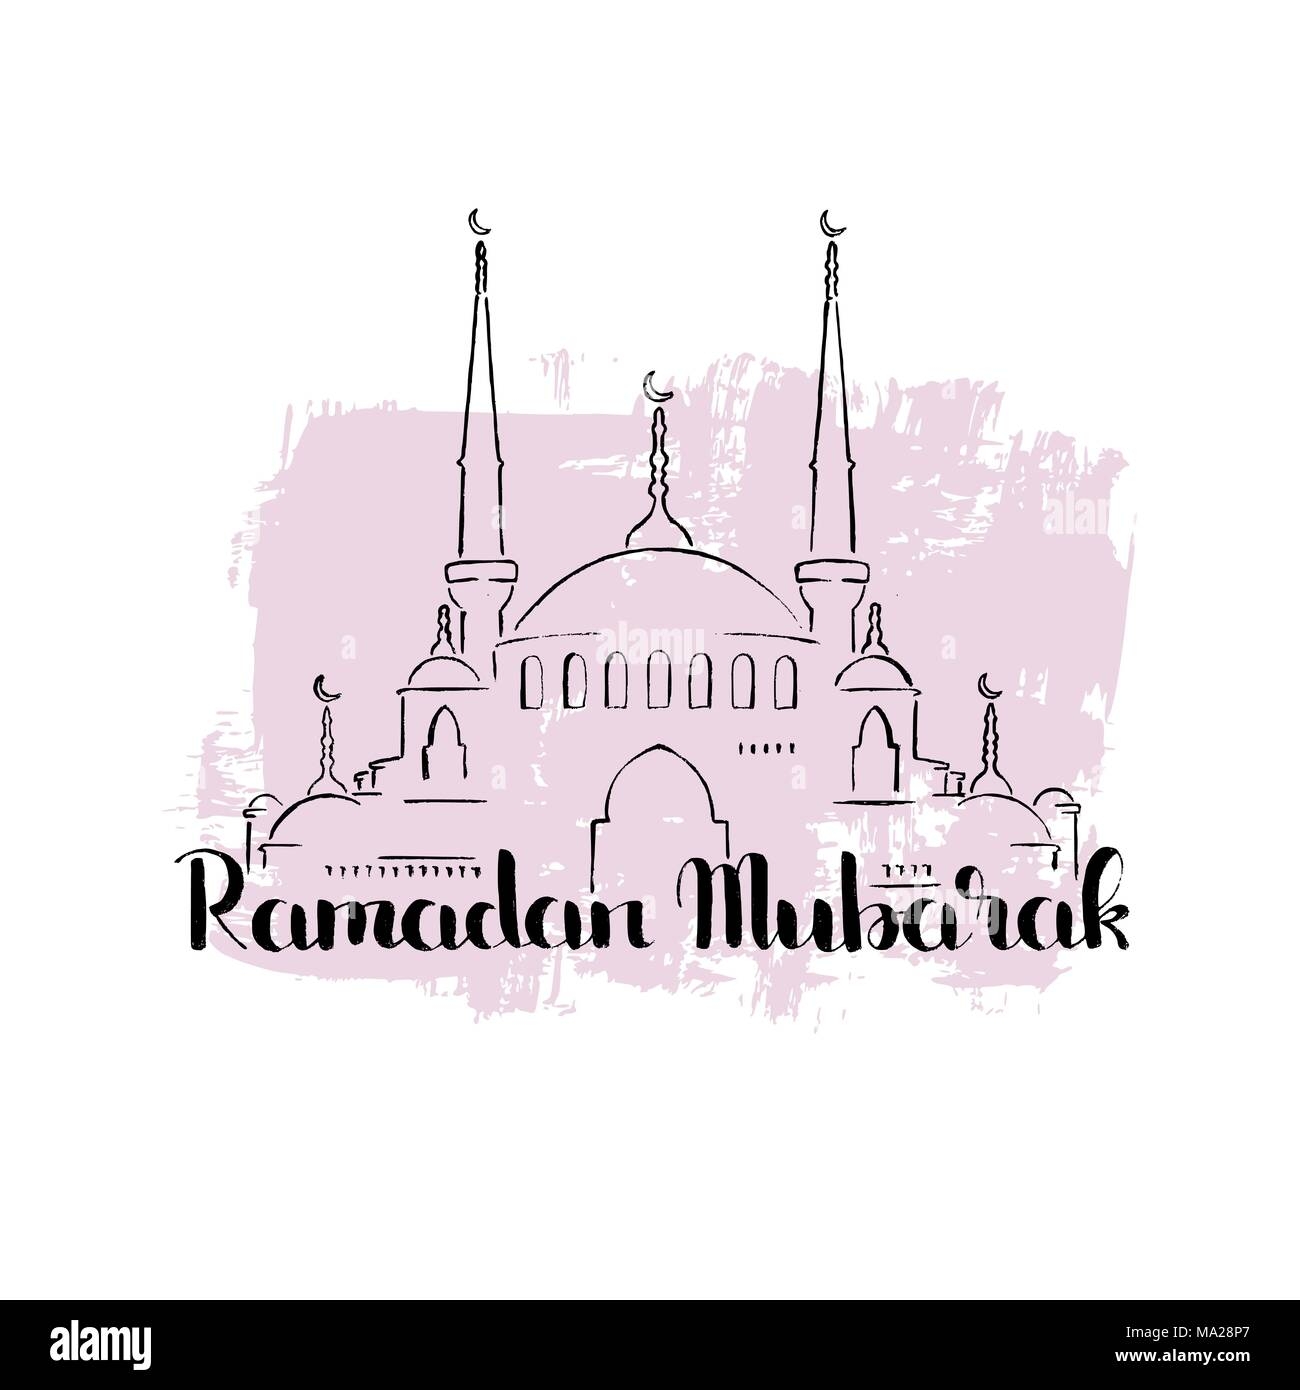 Ramadan Mubarak handwritten lettering. Blessed Month of first revelation of Quran to Prophet Muhammad - Stock Image